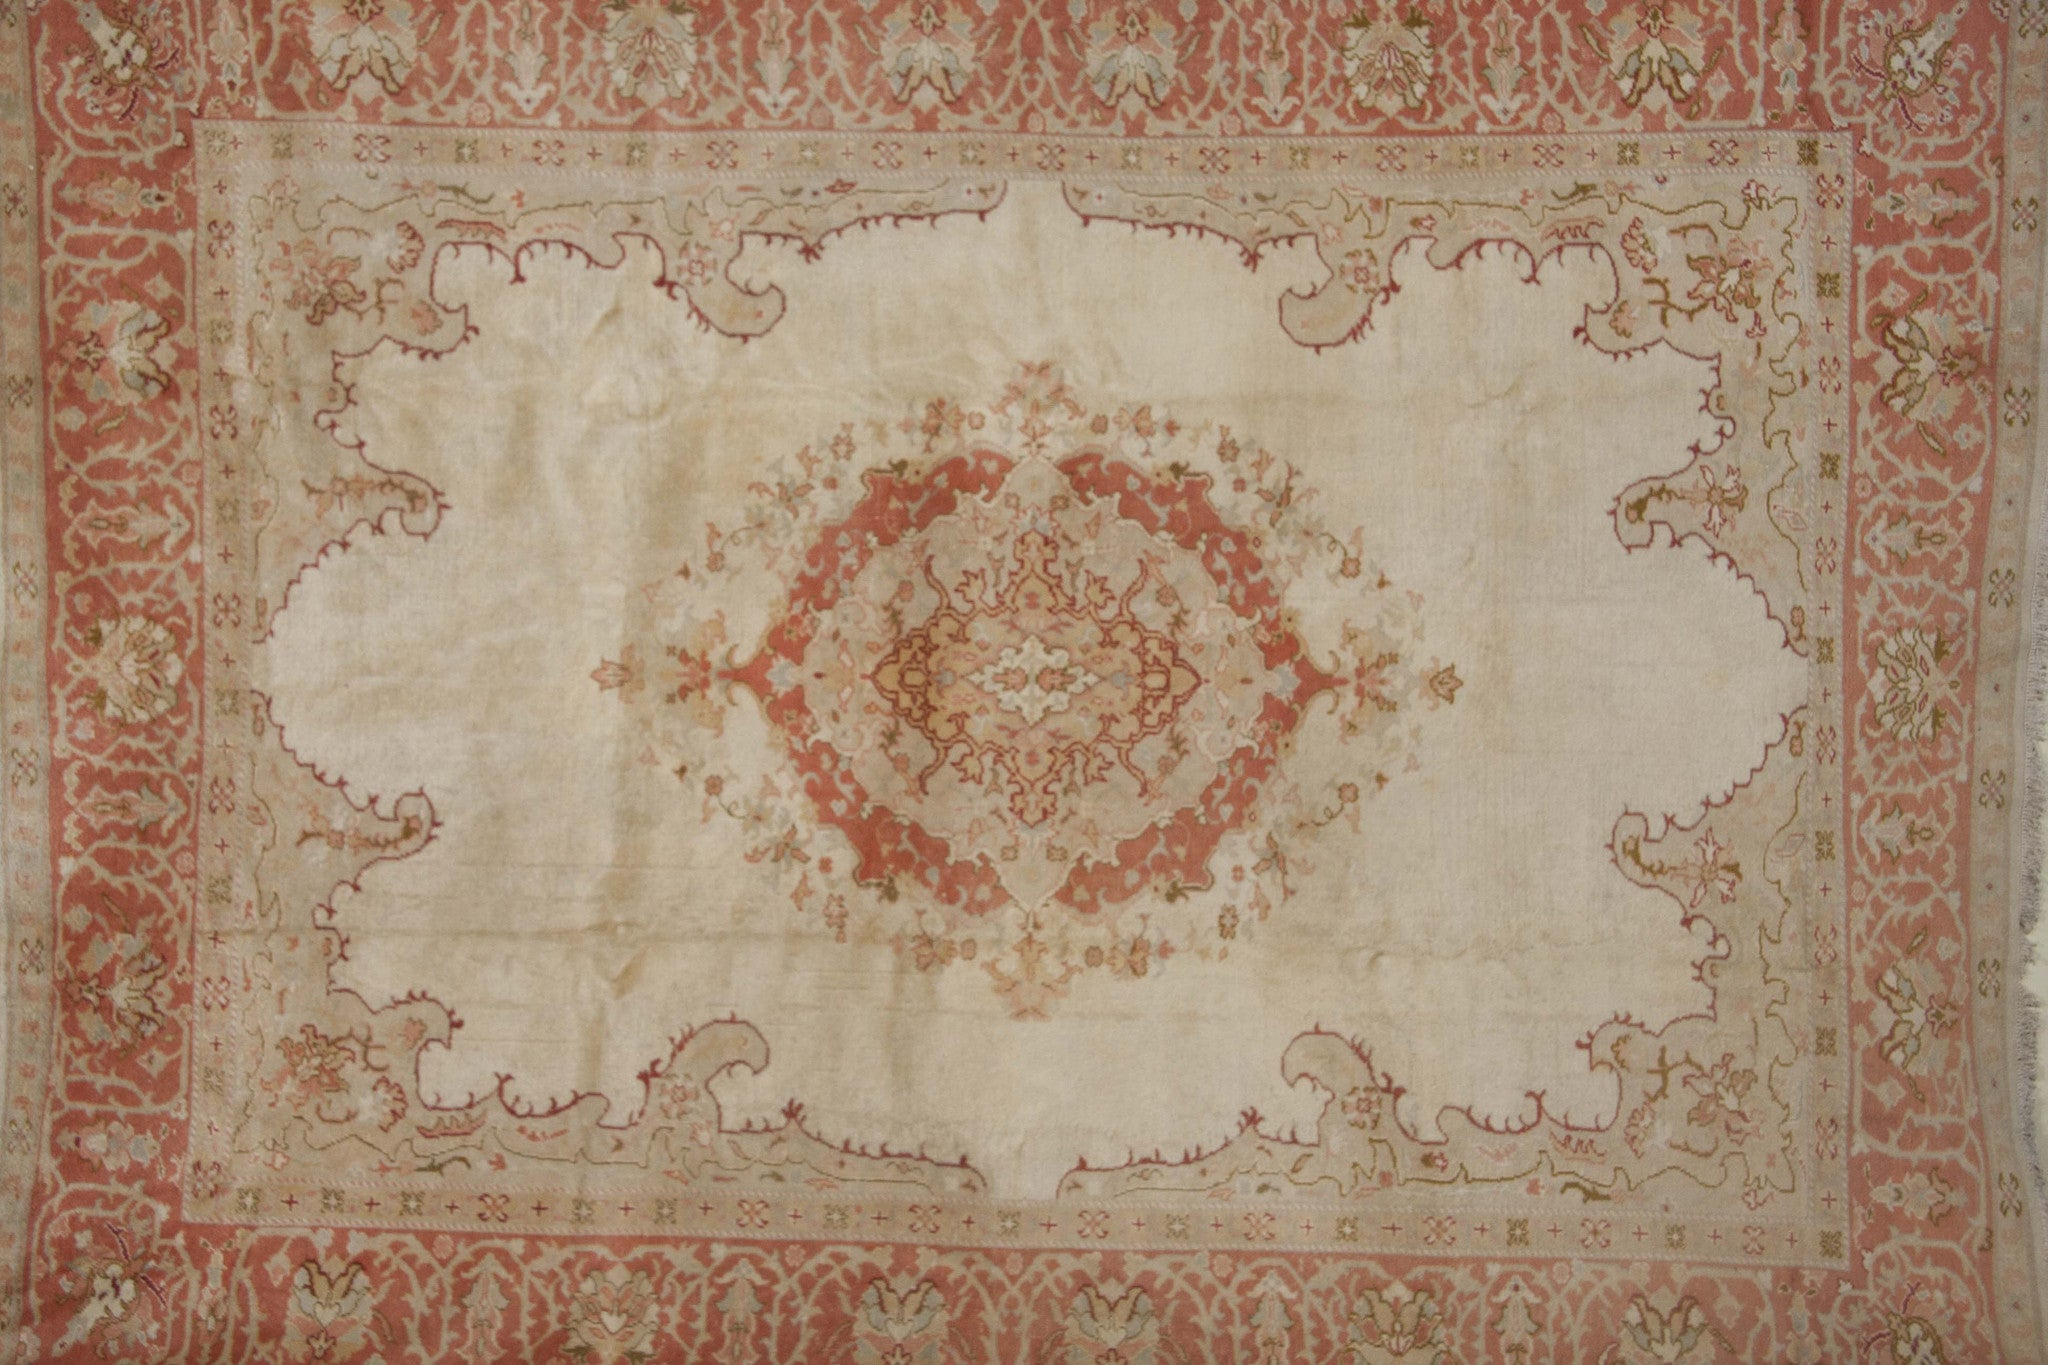 Turkish Ushak Carpet